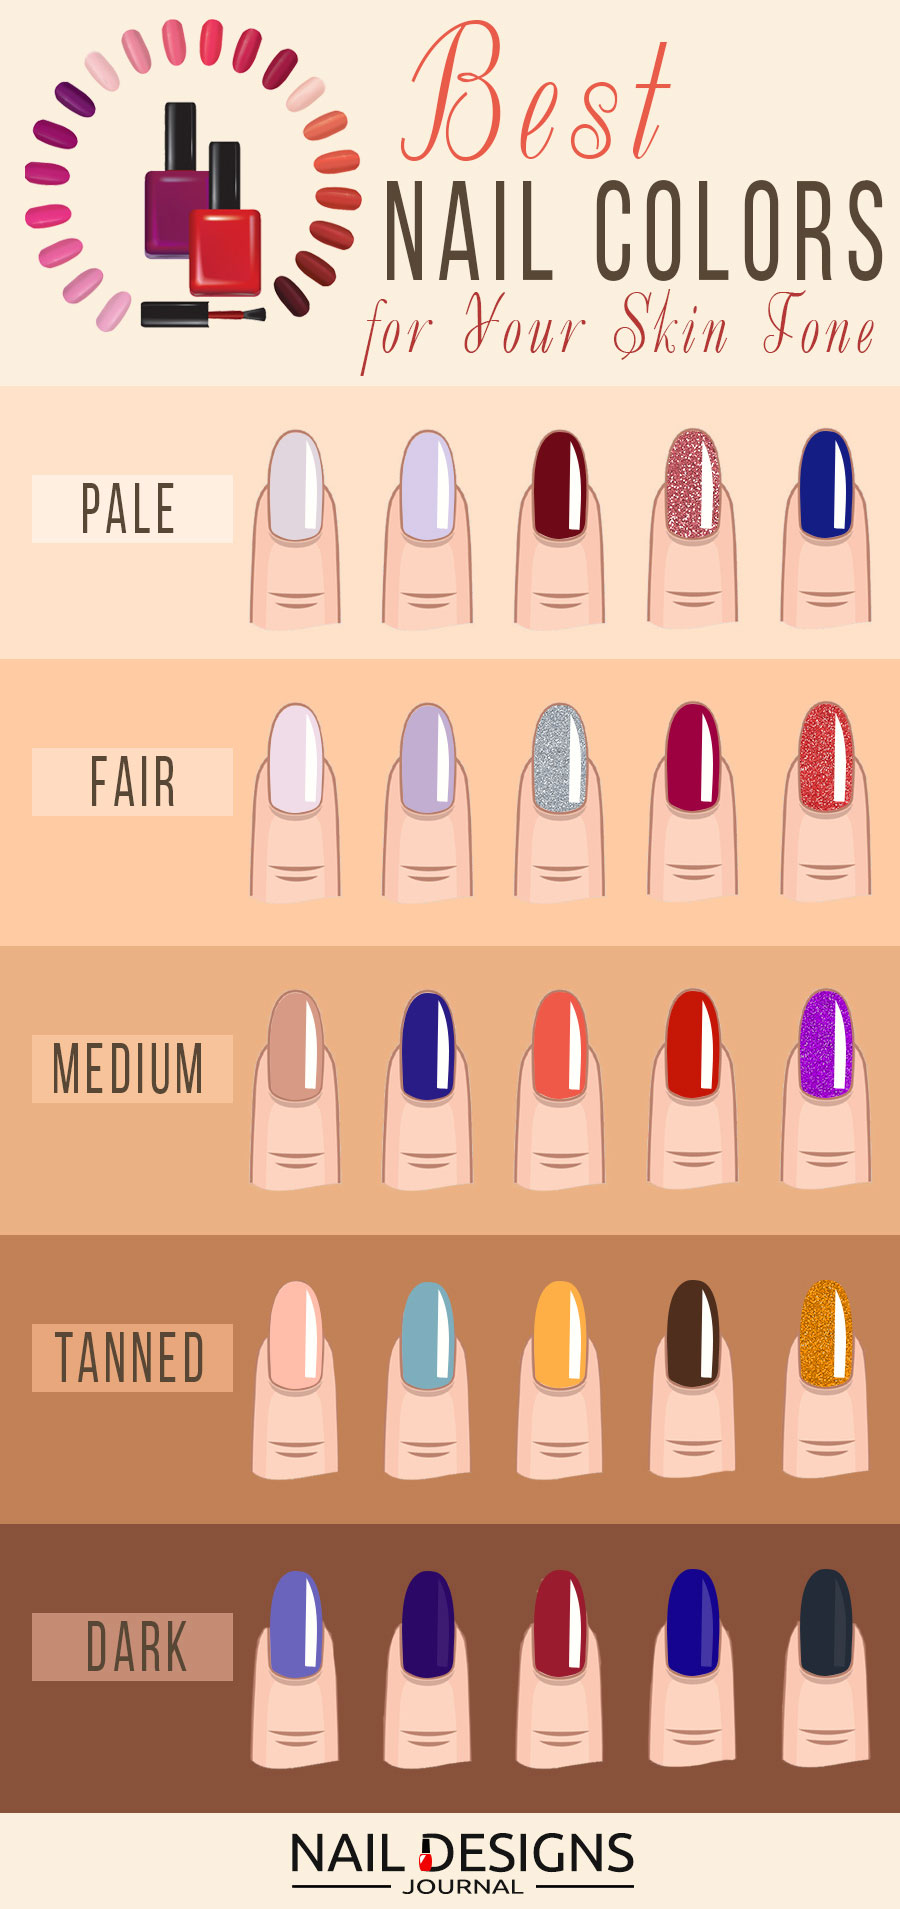 Infographic A Visual Guide on the Right Nail Colors for Different Skin Tones